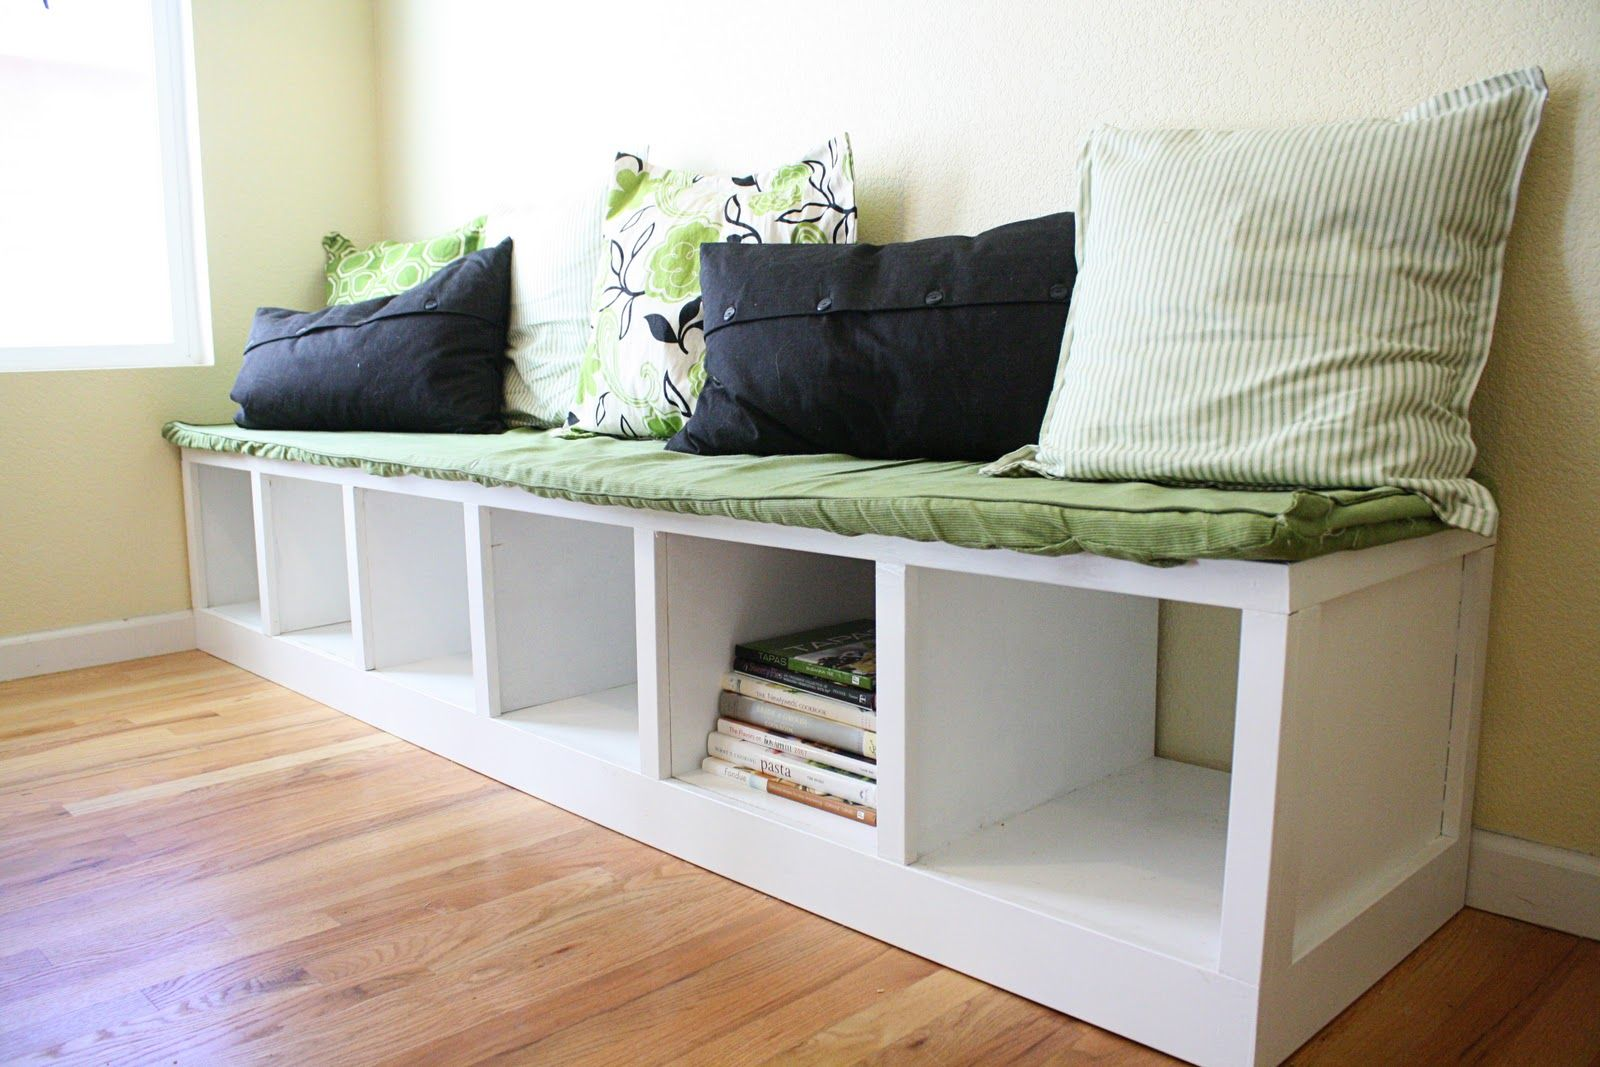 Breakfast nook with banquette seating imperfect diy